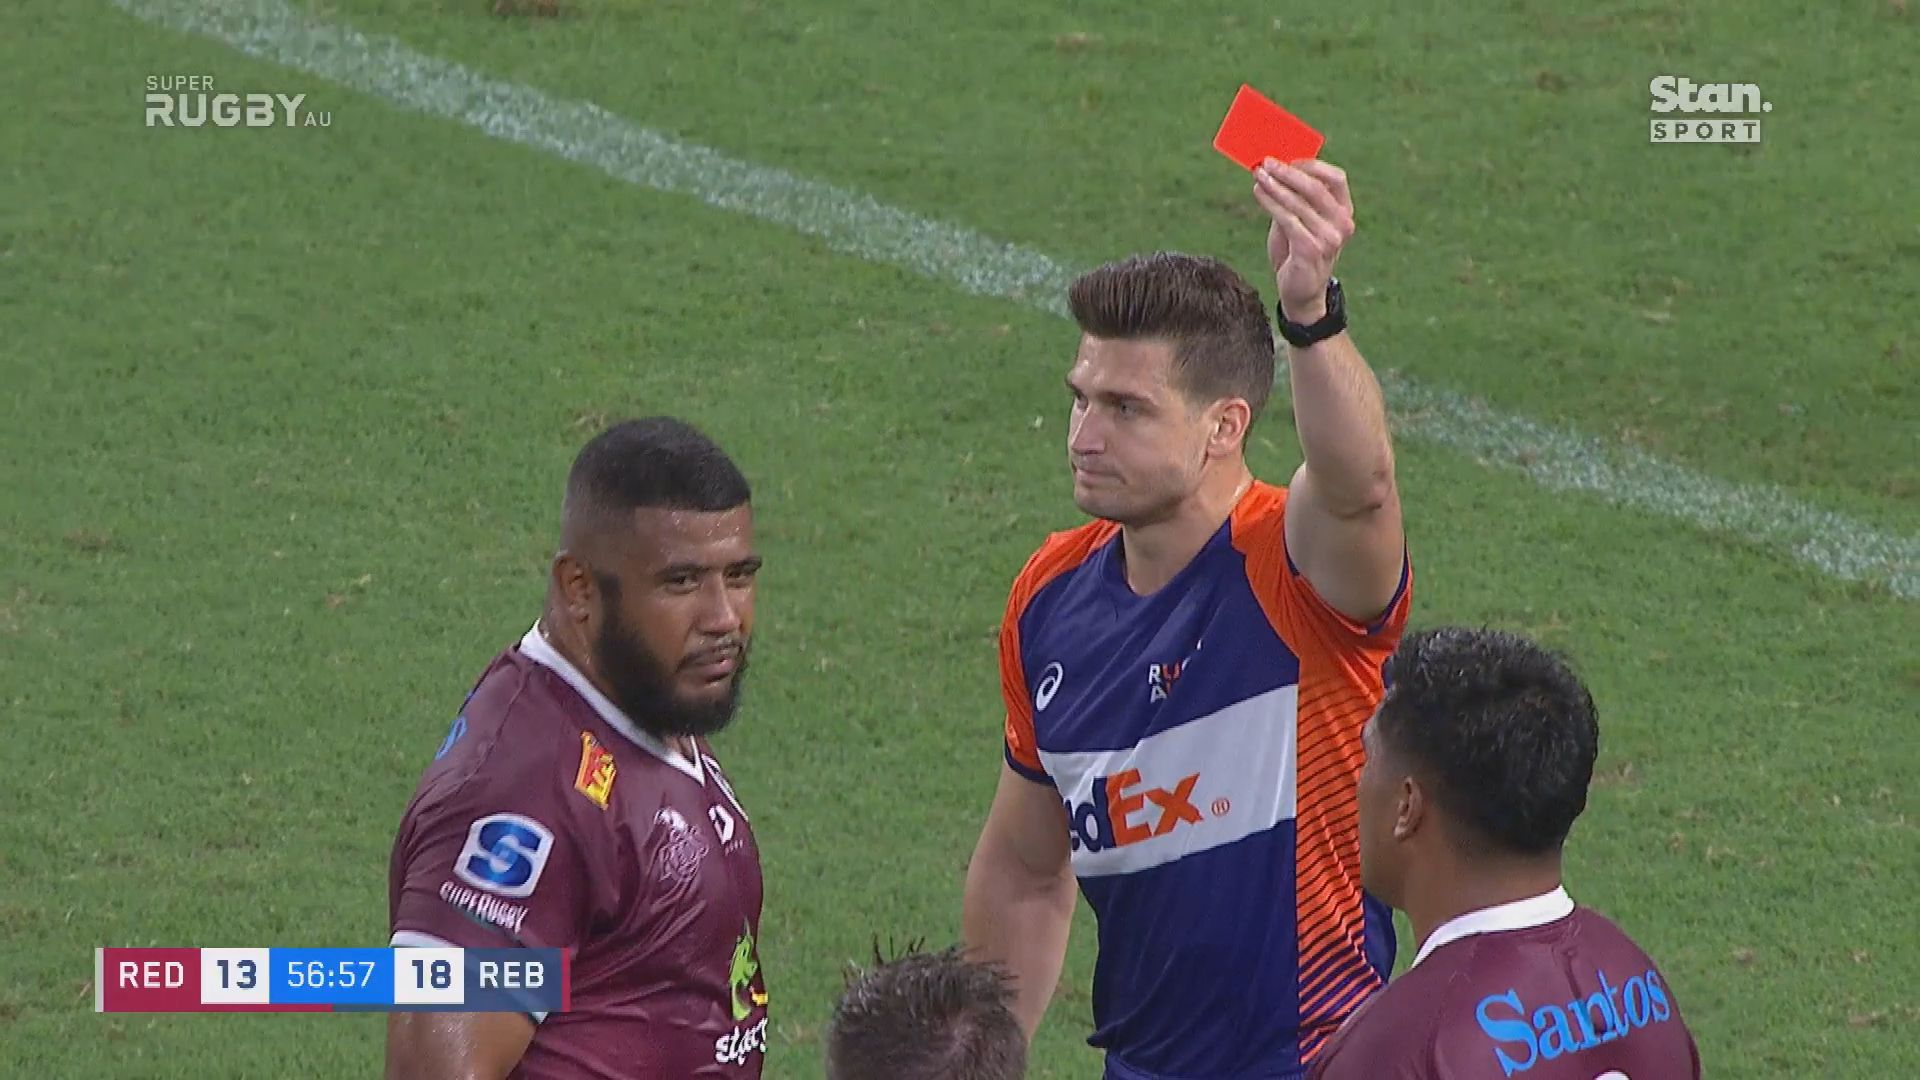 All Blacks legend Andrew Mehrtens says poor refereeing is damaging rugby as a spectacle